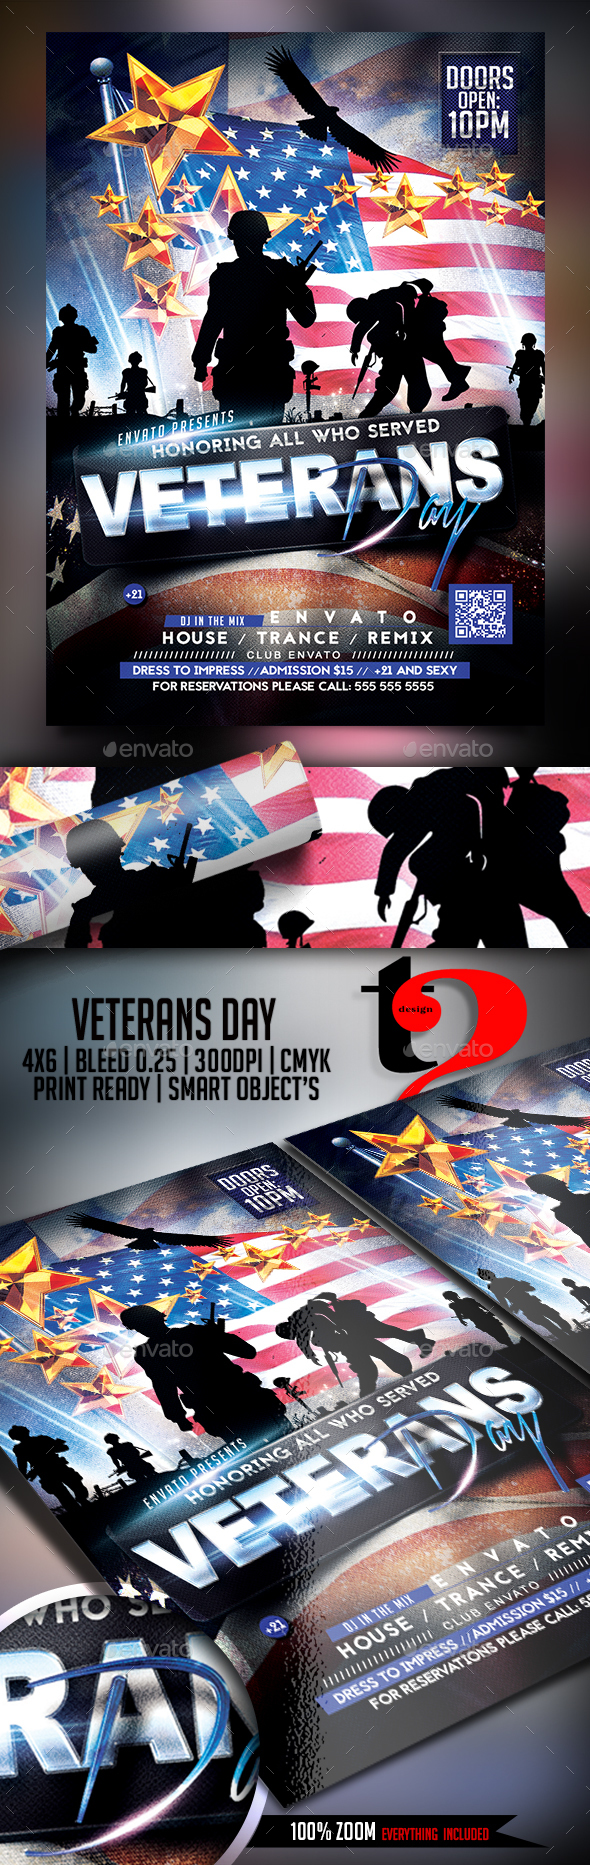 Veterans Day Celebration Flyer - Clubs & Parties Events